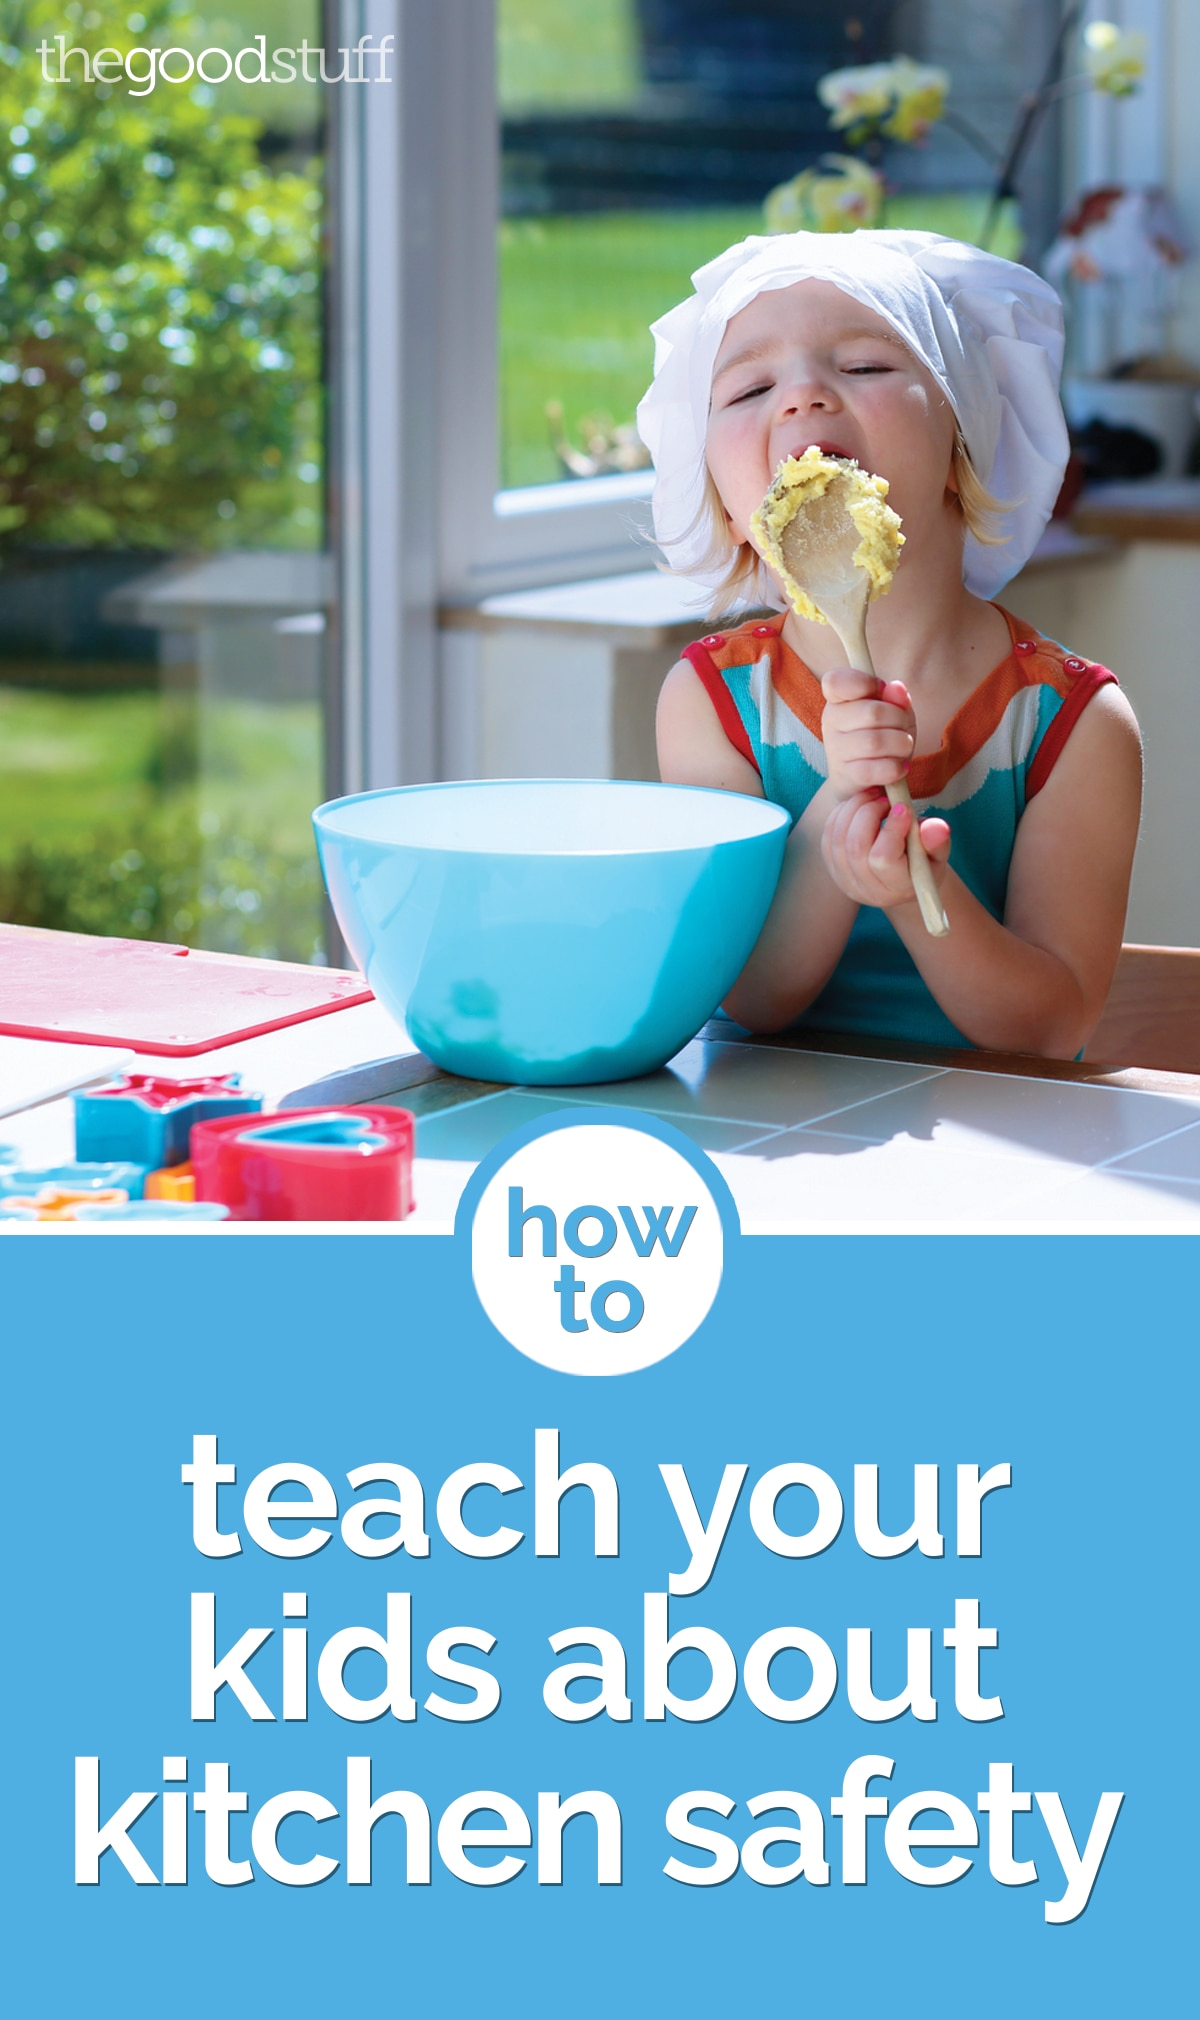 How To Teach Your Kids About Kitchen Safety